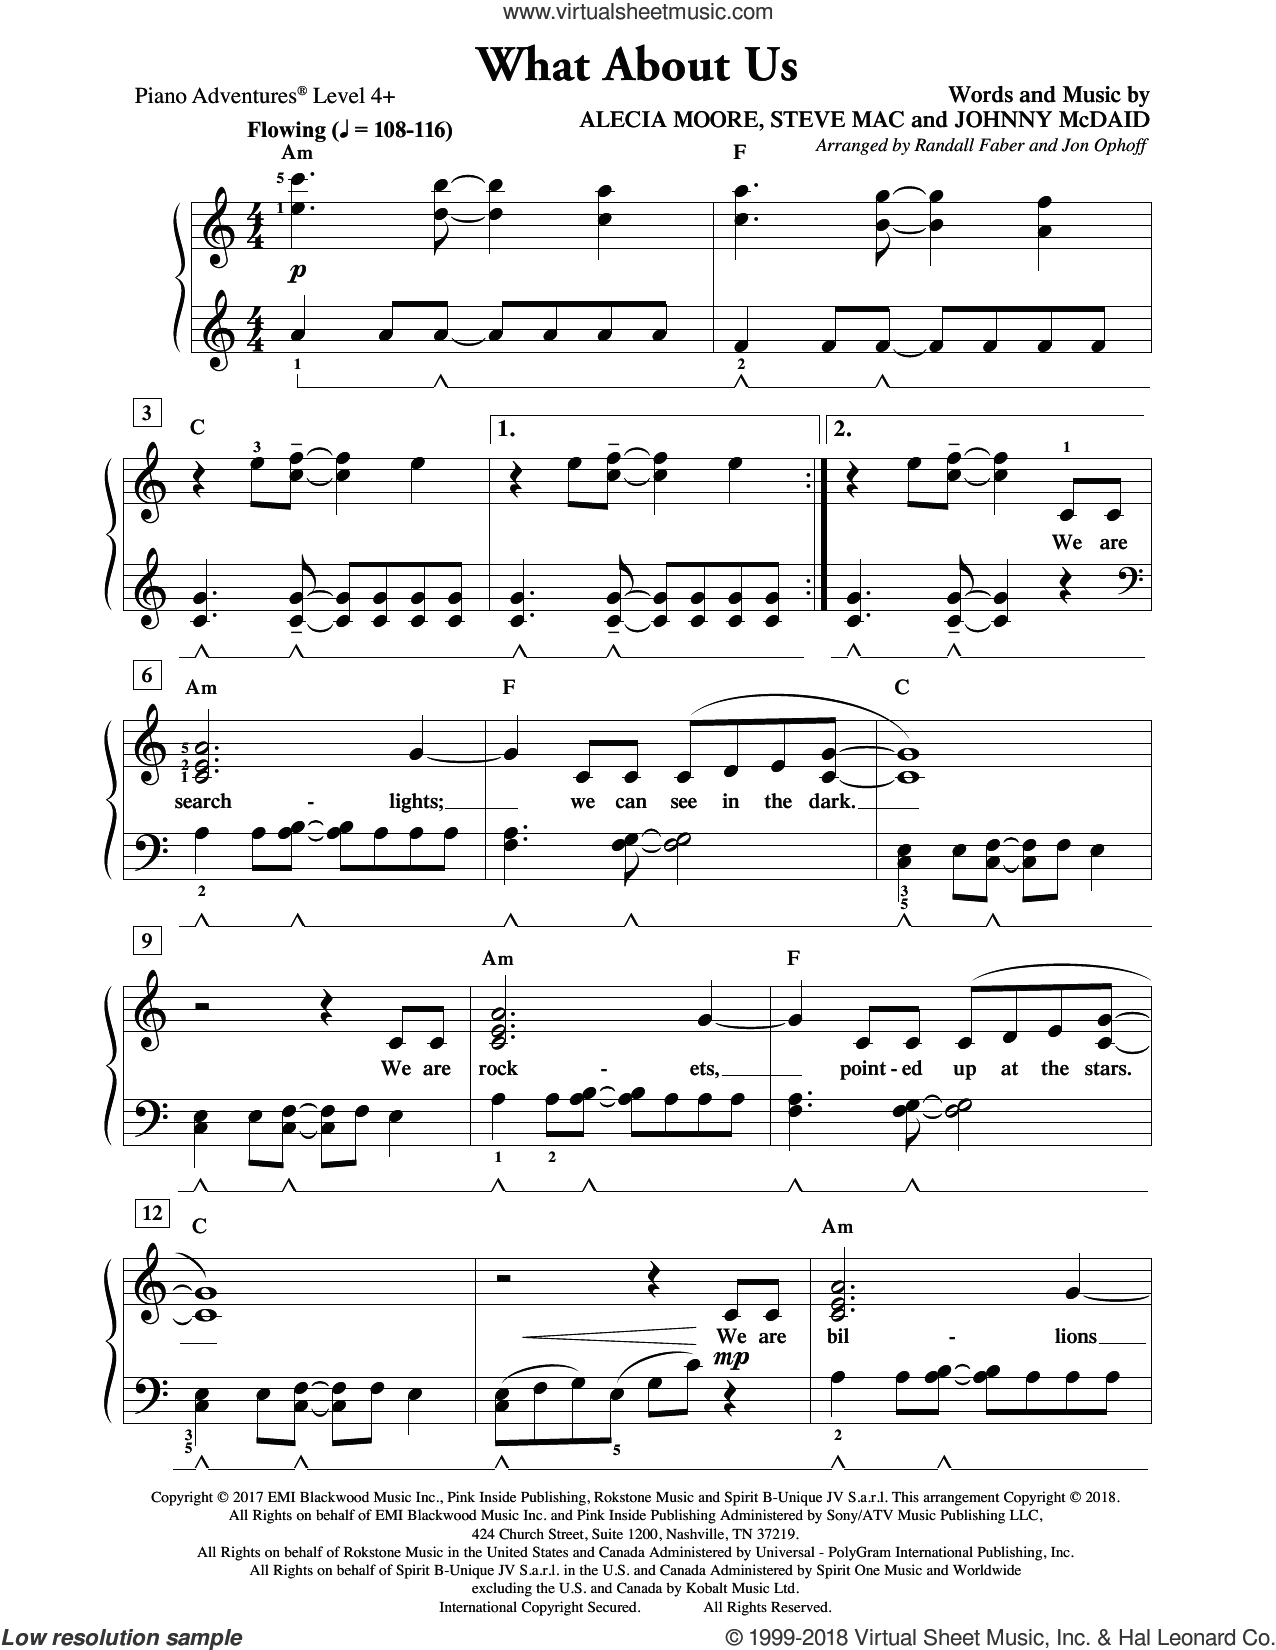 What About Us sheet music for piano solo by Randall Faber & Jon Ophoff, Miscellaneous, Alecia Moore, Johnny McDaid and Steve Mac, intermediate/advanced skill level